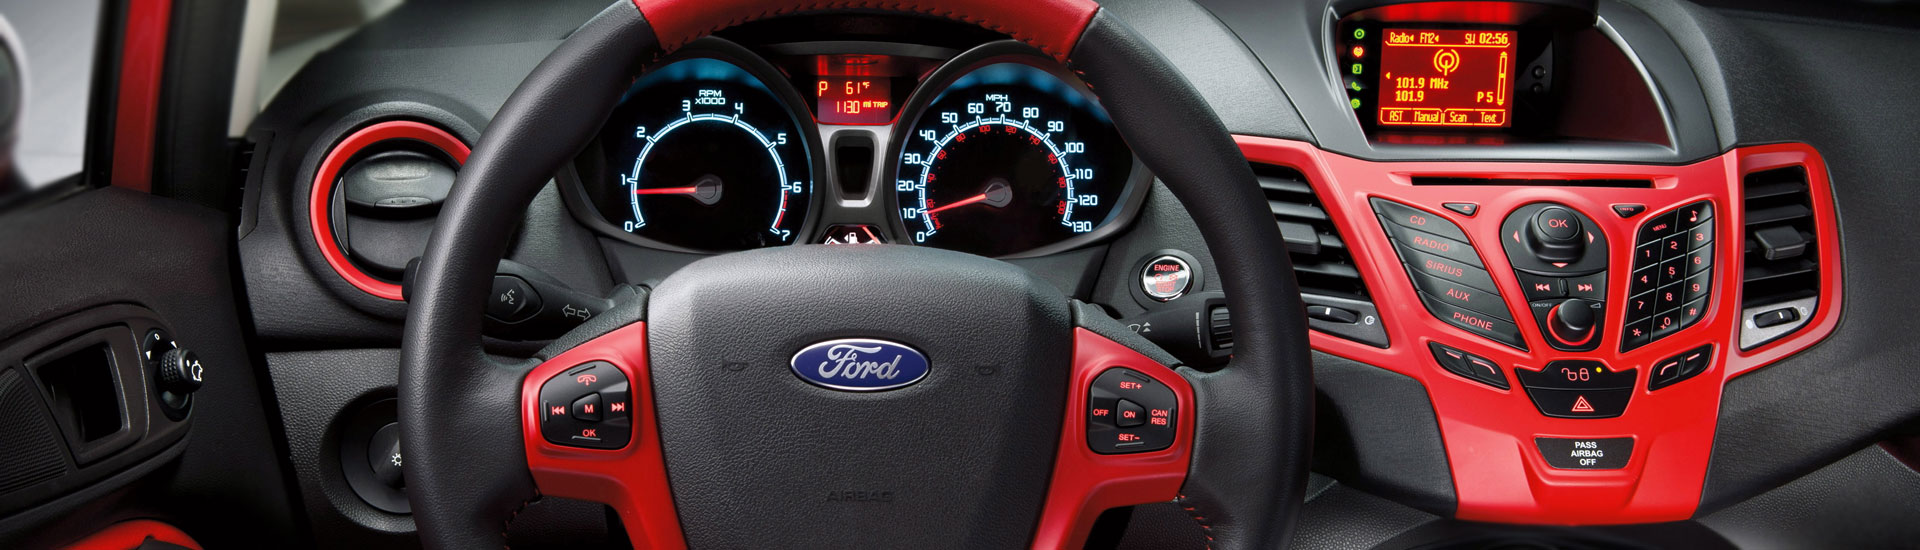 1997 Ford E-150 Custom Dash Kits